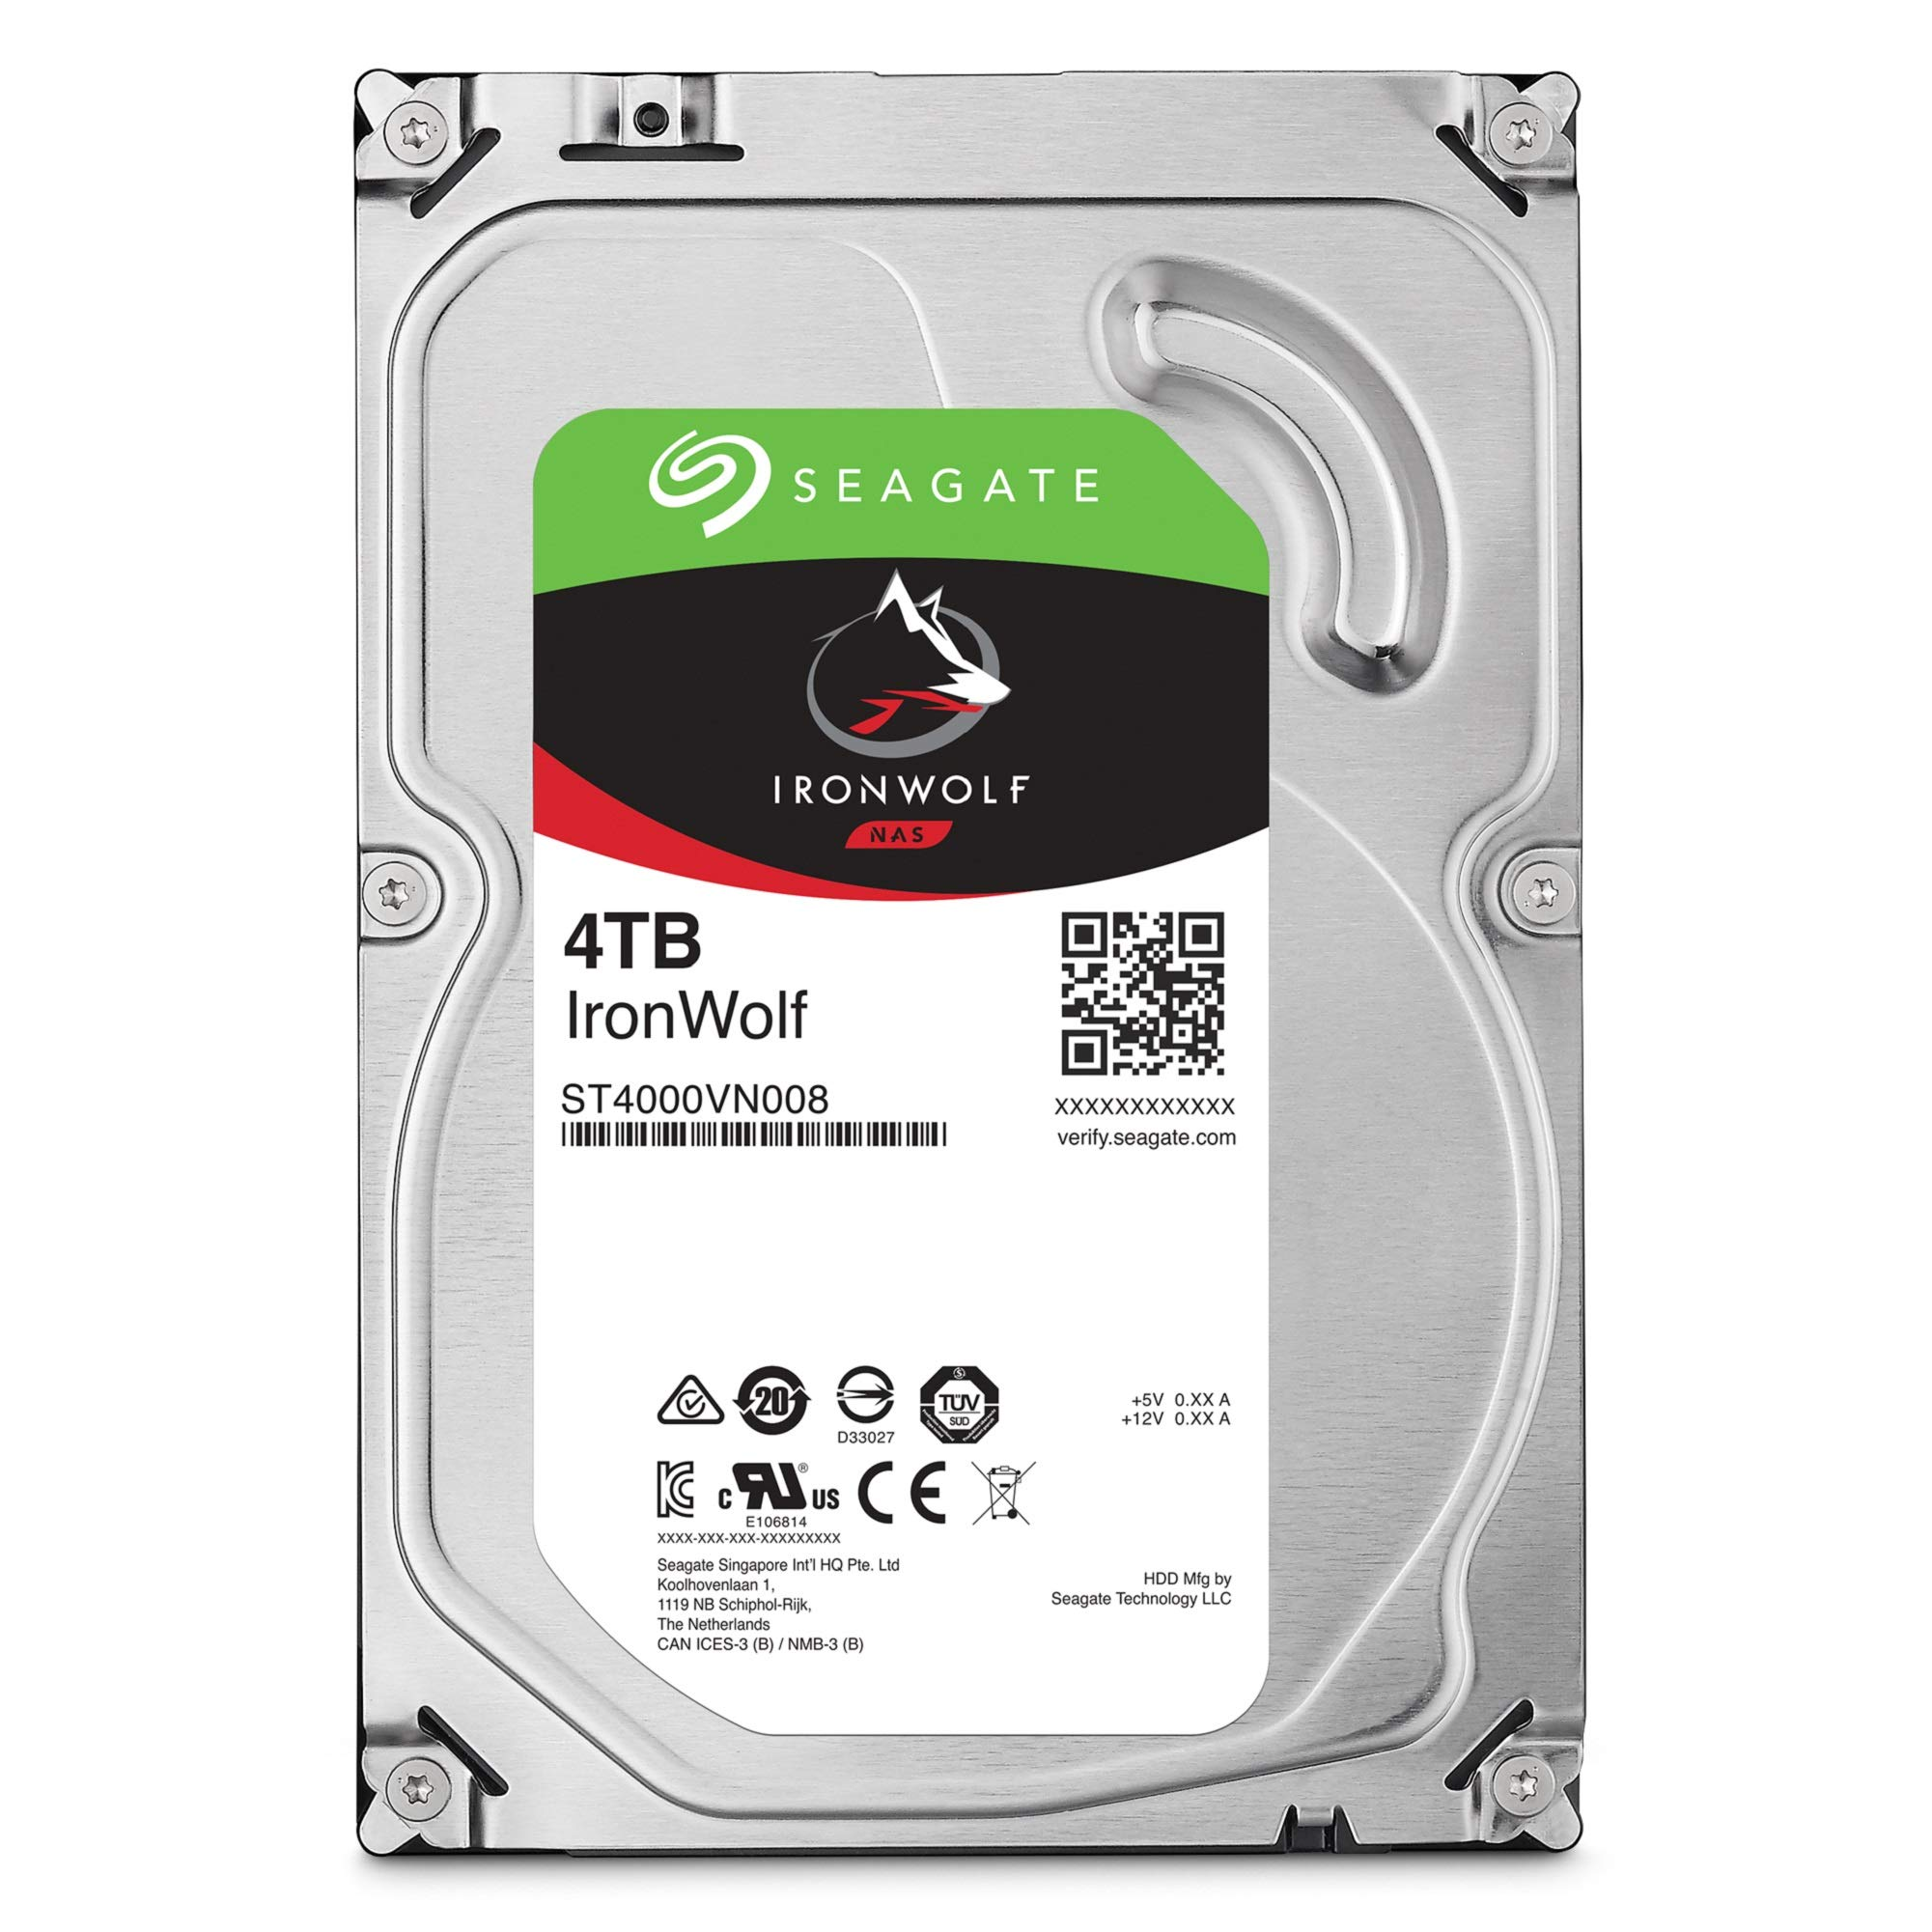 Seagate IronWolf 4TB NAS Internal Hard Drive HDD - 3.5 Inch SATA 6Gb/s 5900 RPM 64MB Cache for RAID Network Attached Storage - Frustration Free Packaging (ST4000VN008) by Seagate (Image #2)